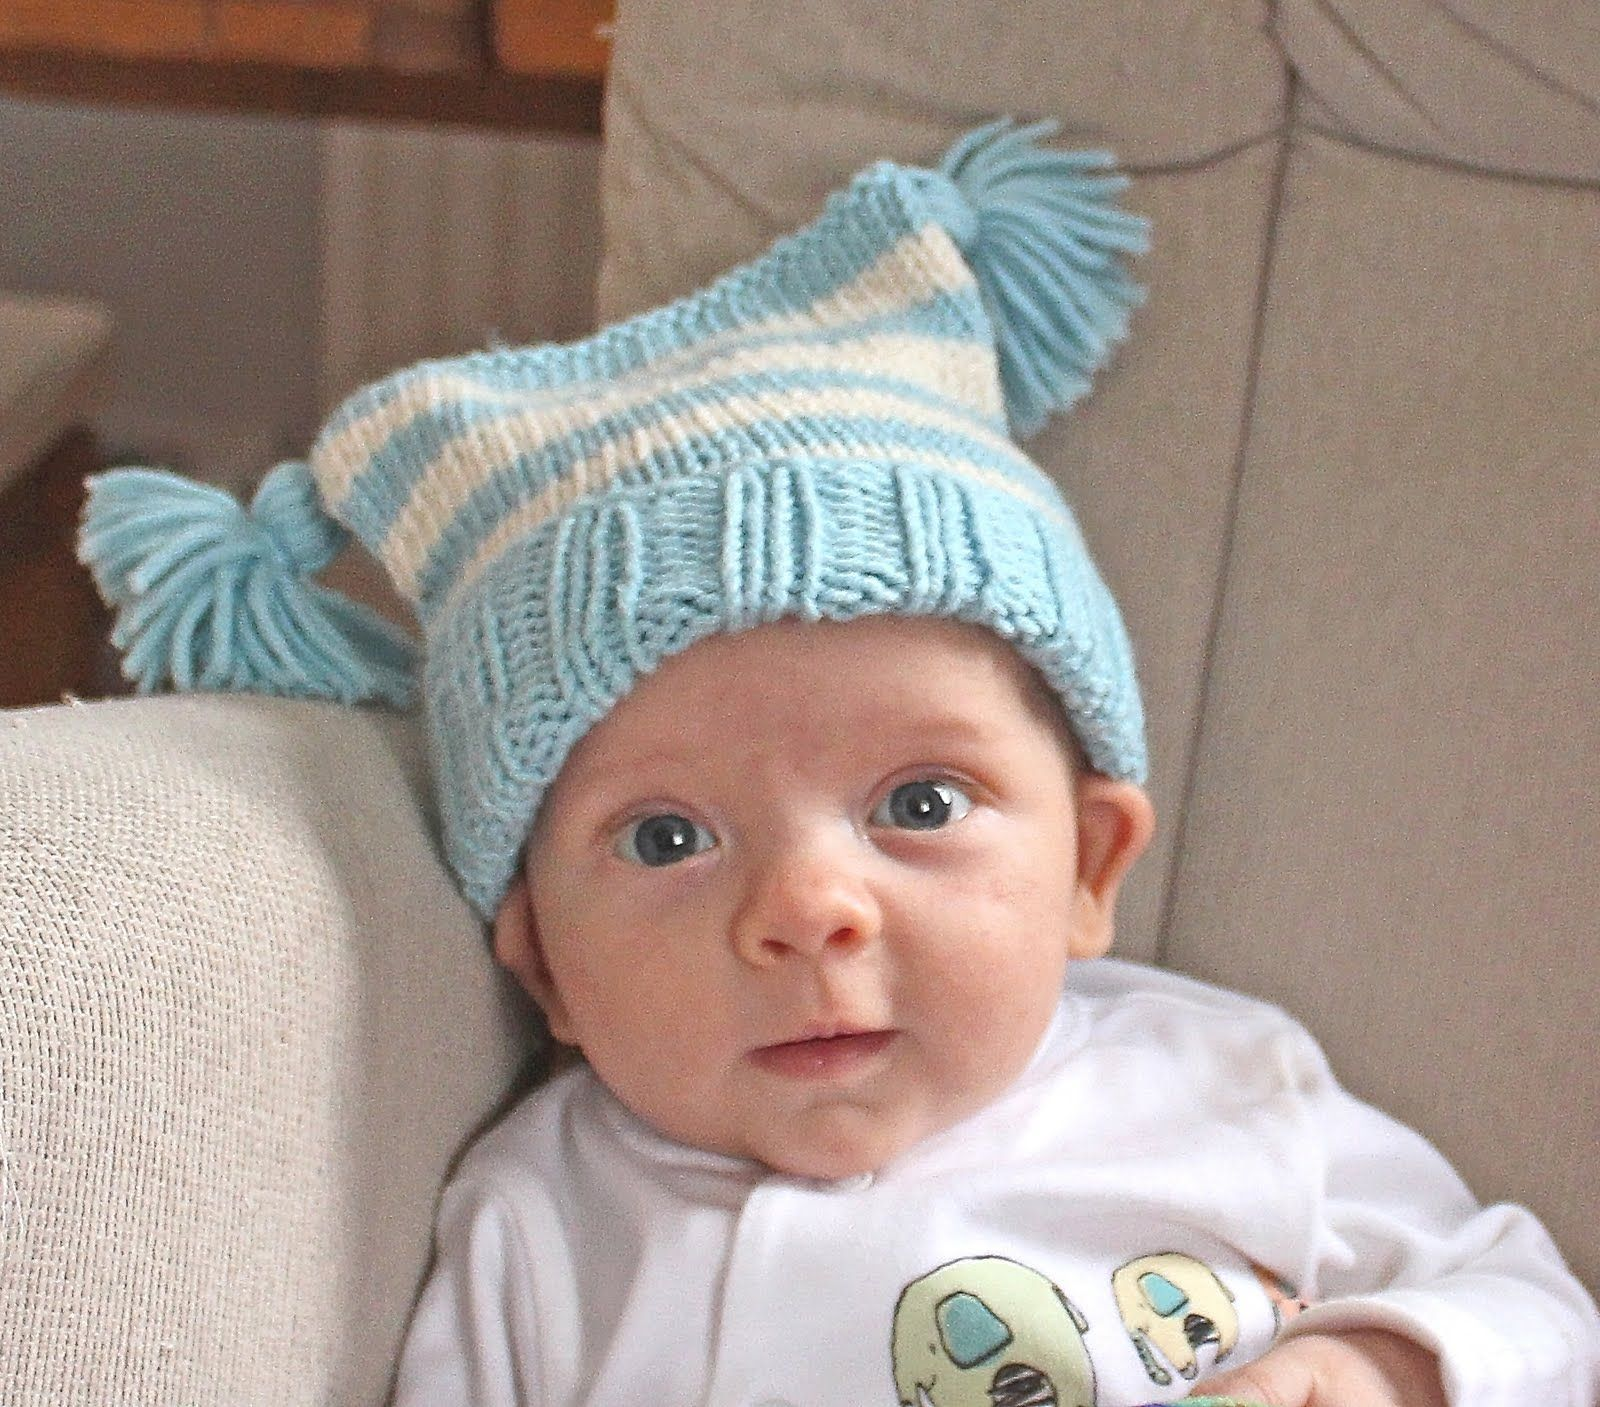 Easy Knitting Pattern For Babies : Free easy knitting pattern for a baby tassels hat crafts